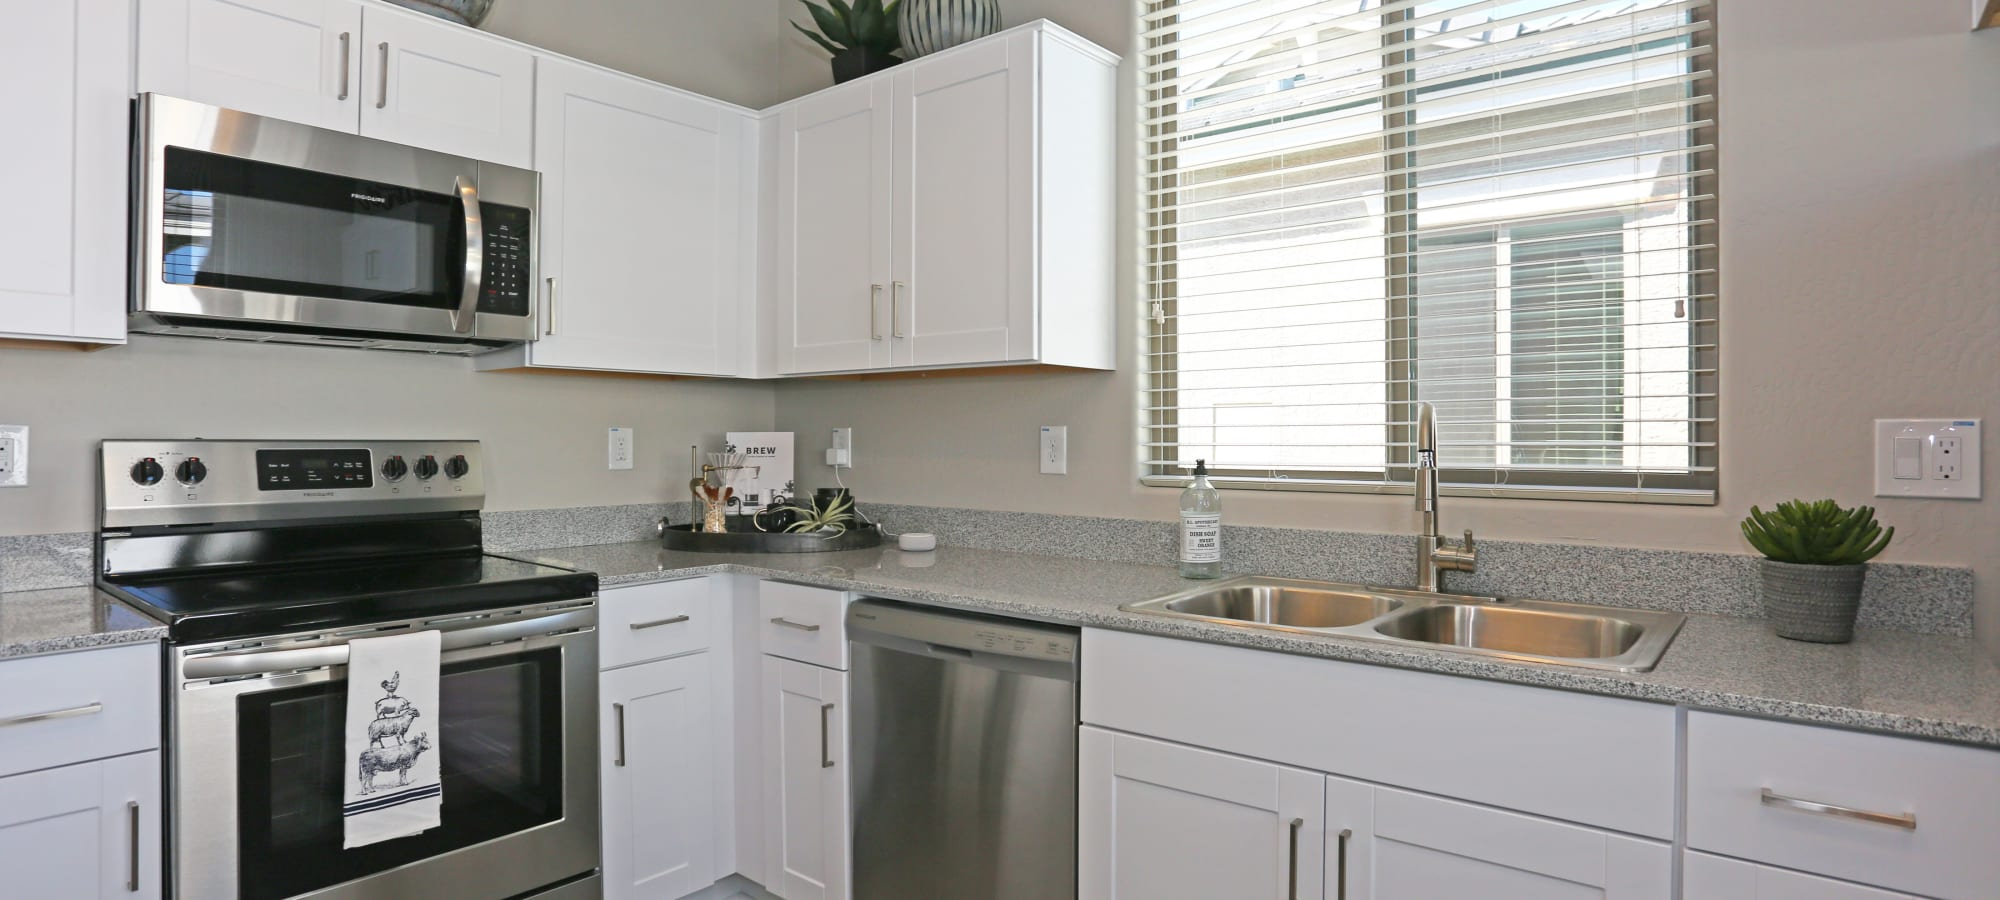 White cabinetry in the kitchen of a model home at Christopher Todd Communities On Happy Valley in Peoria, Arizona